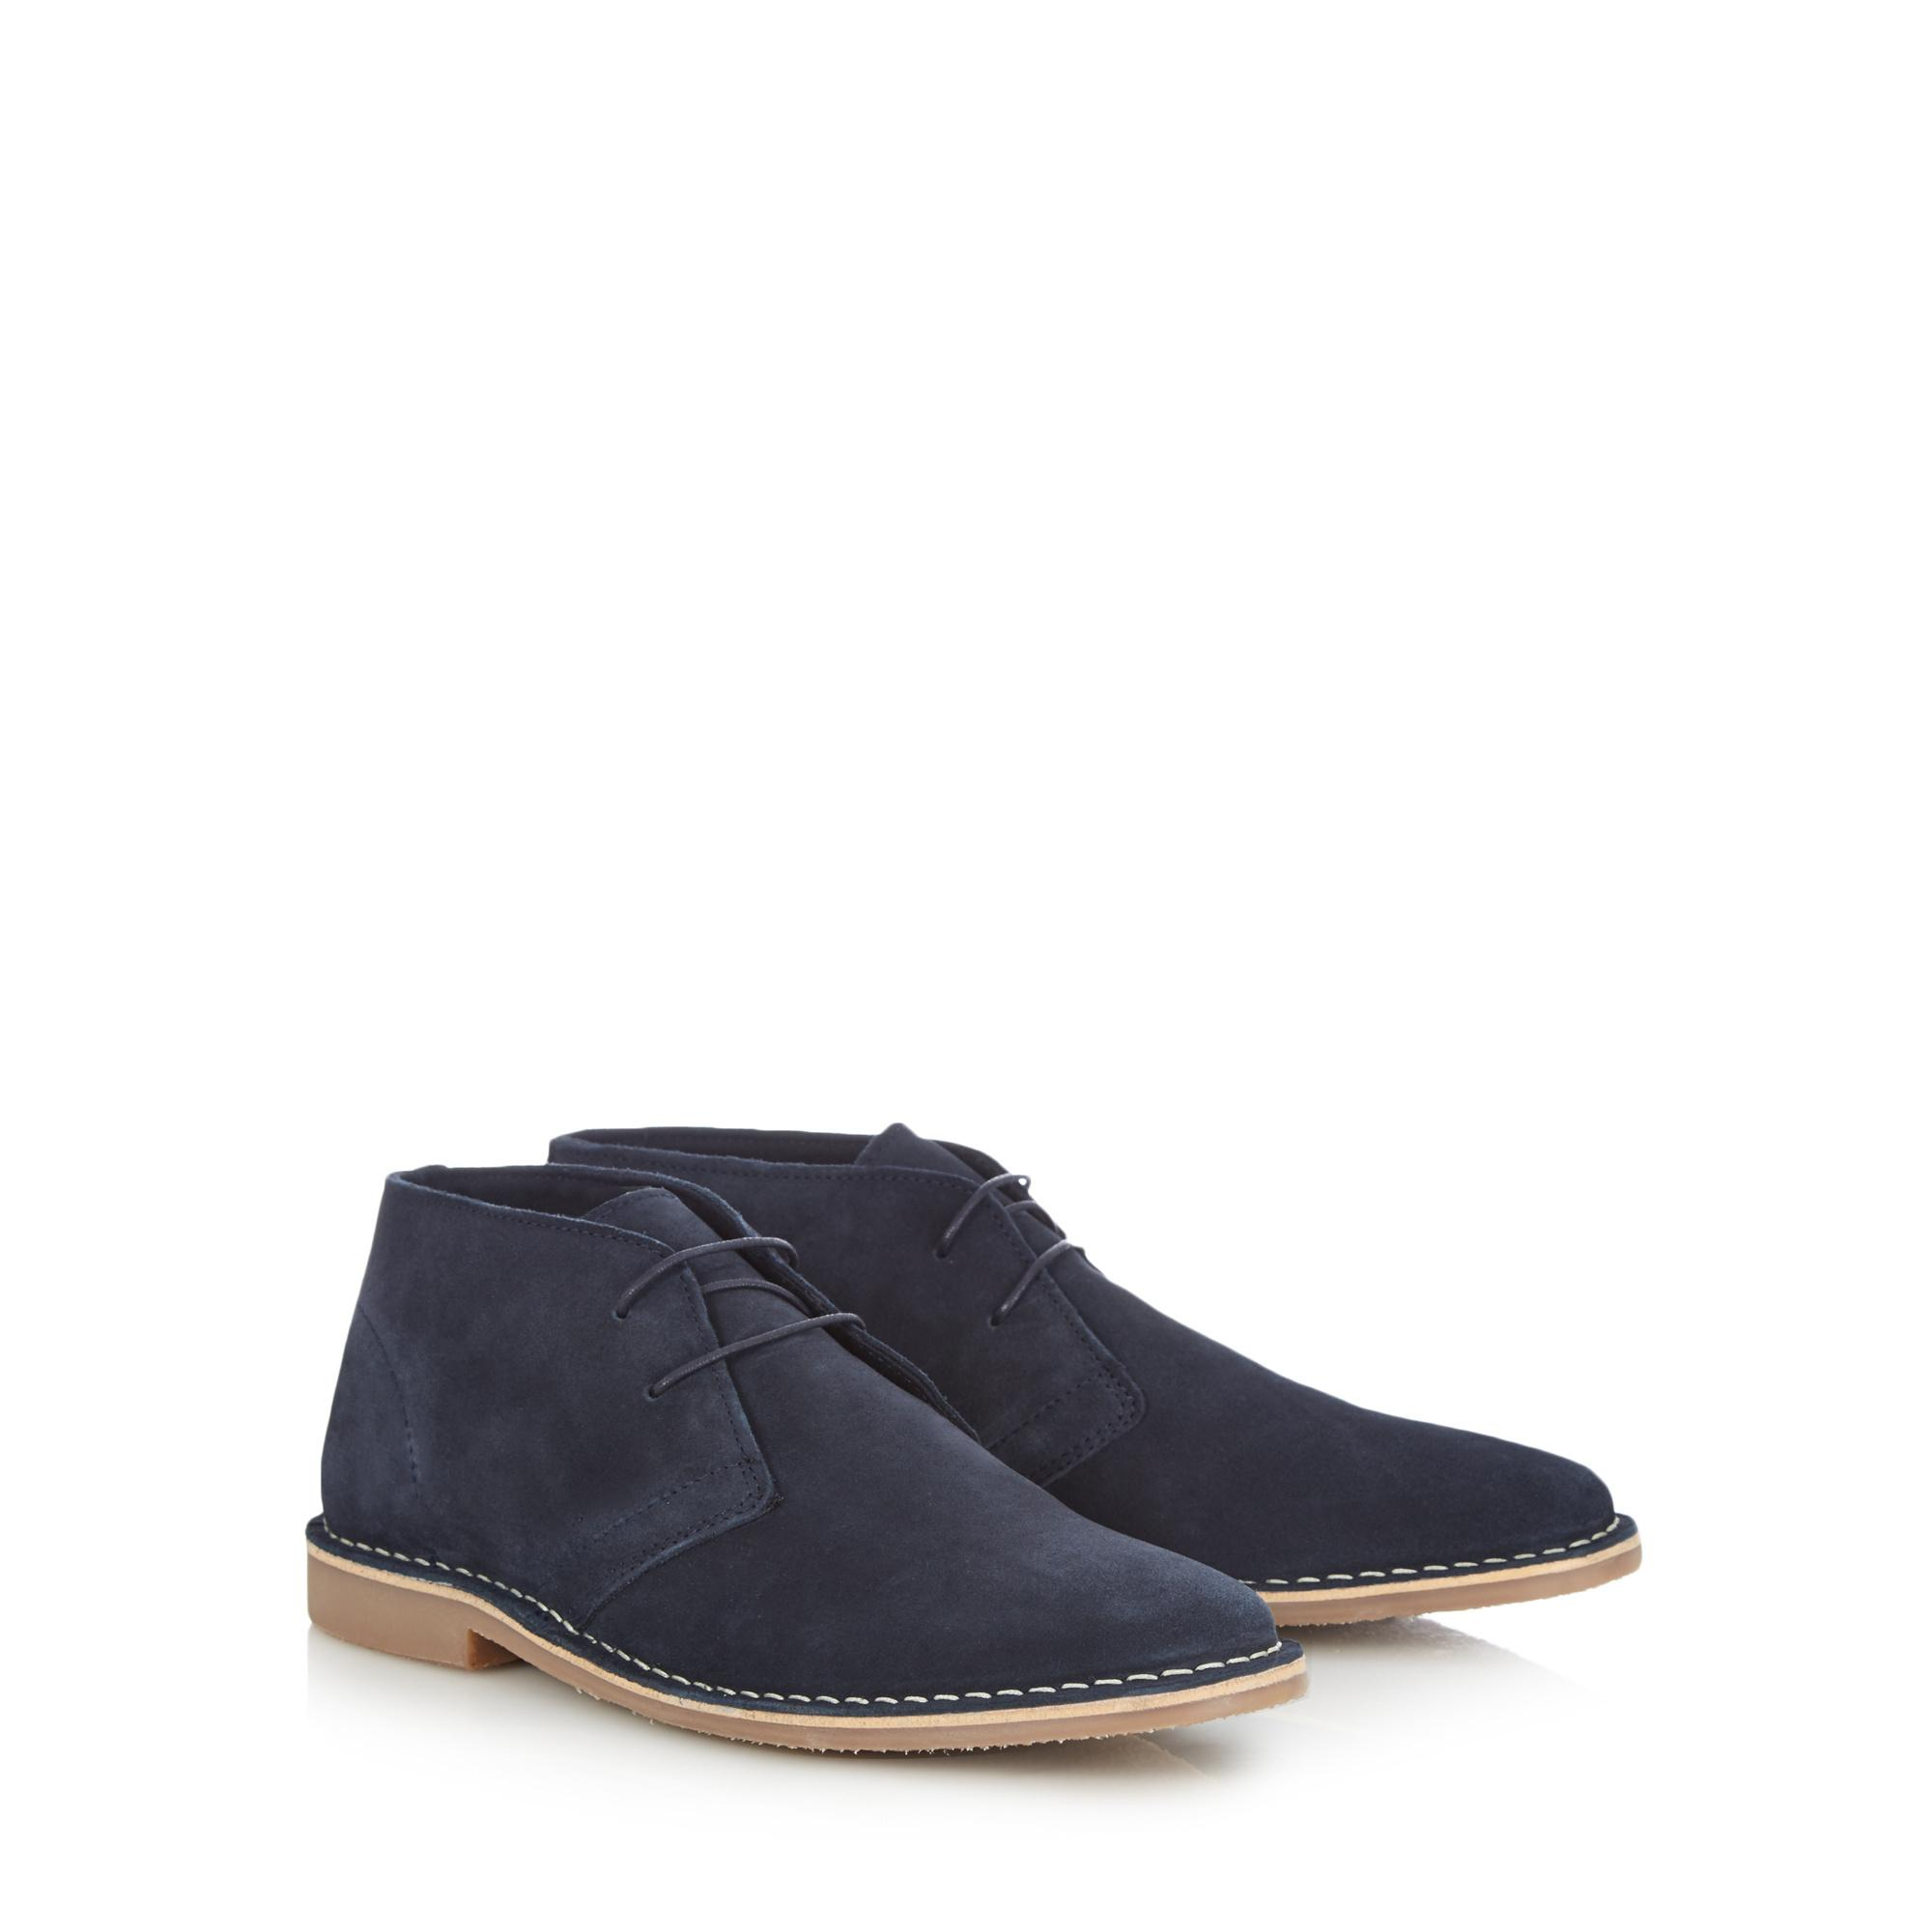 Blue Suede 'Stevie' Desert Boots by Red